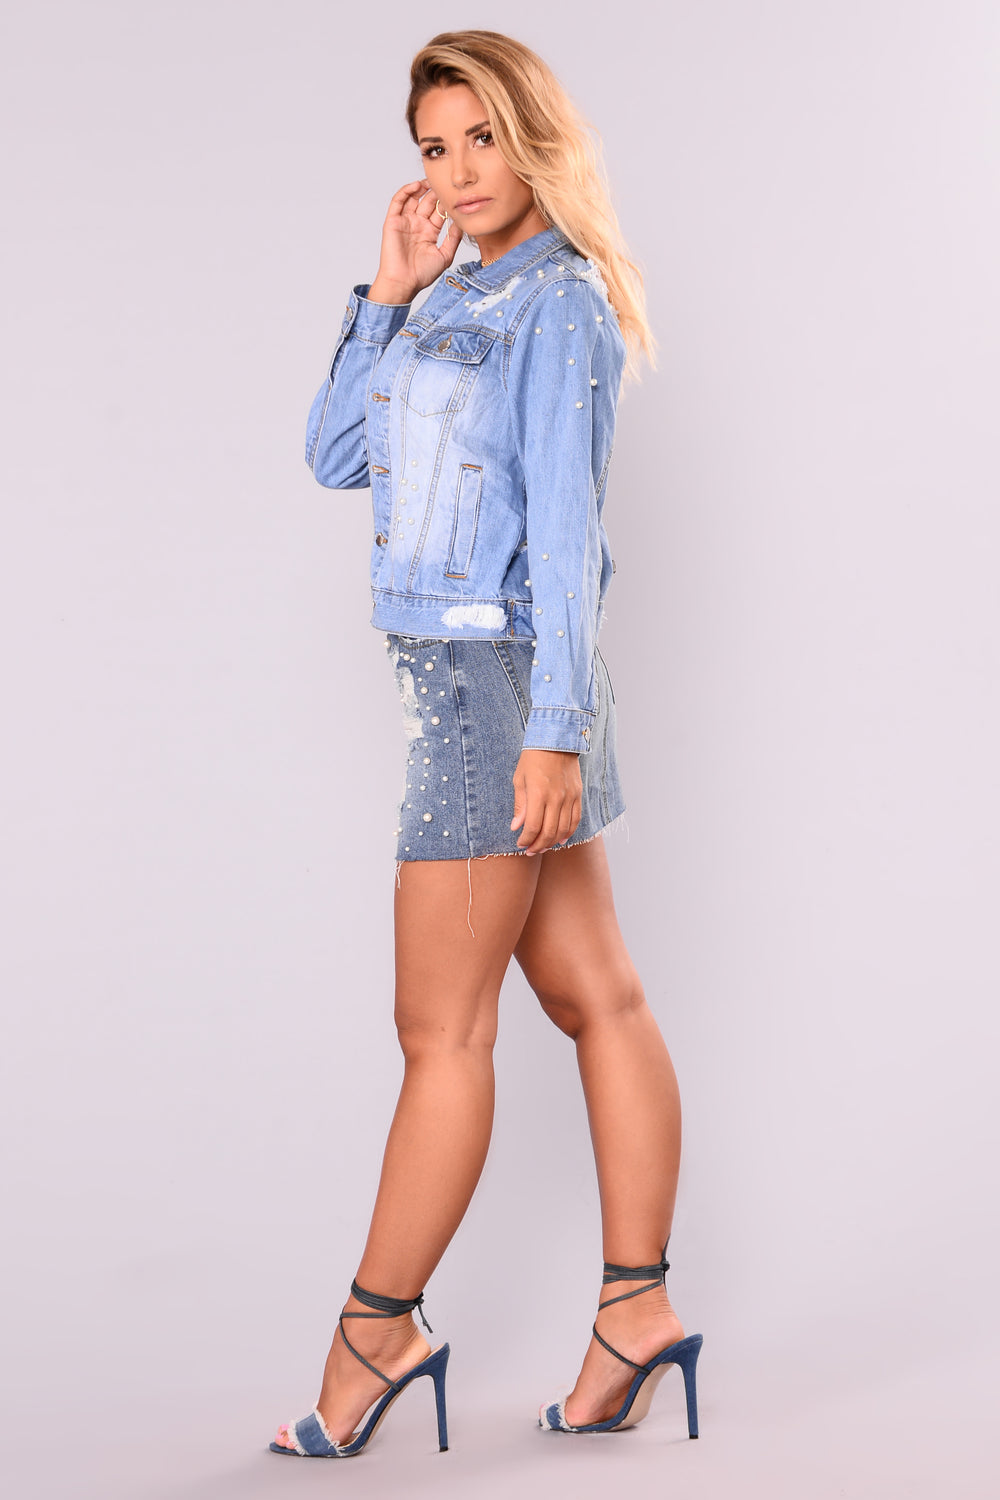 Girl In Pearls Denim Skirt - Medium